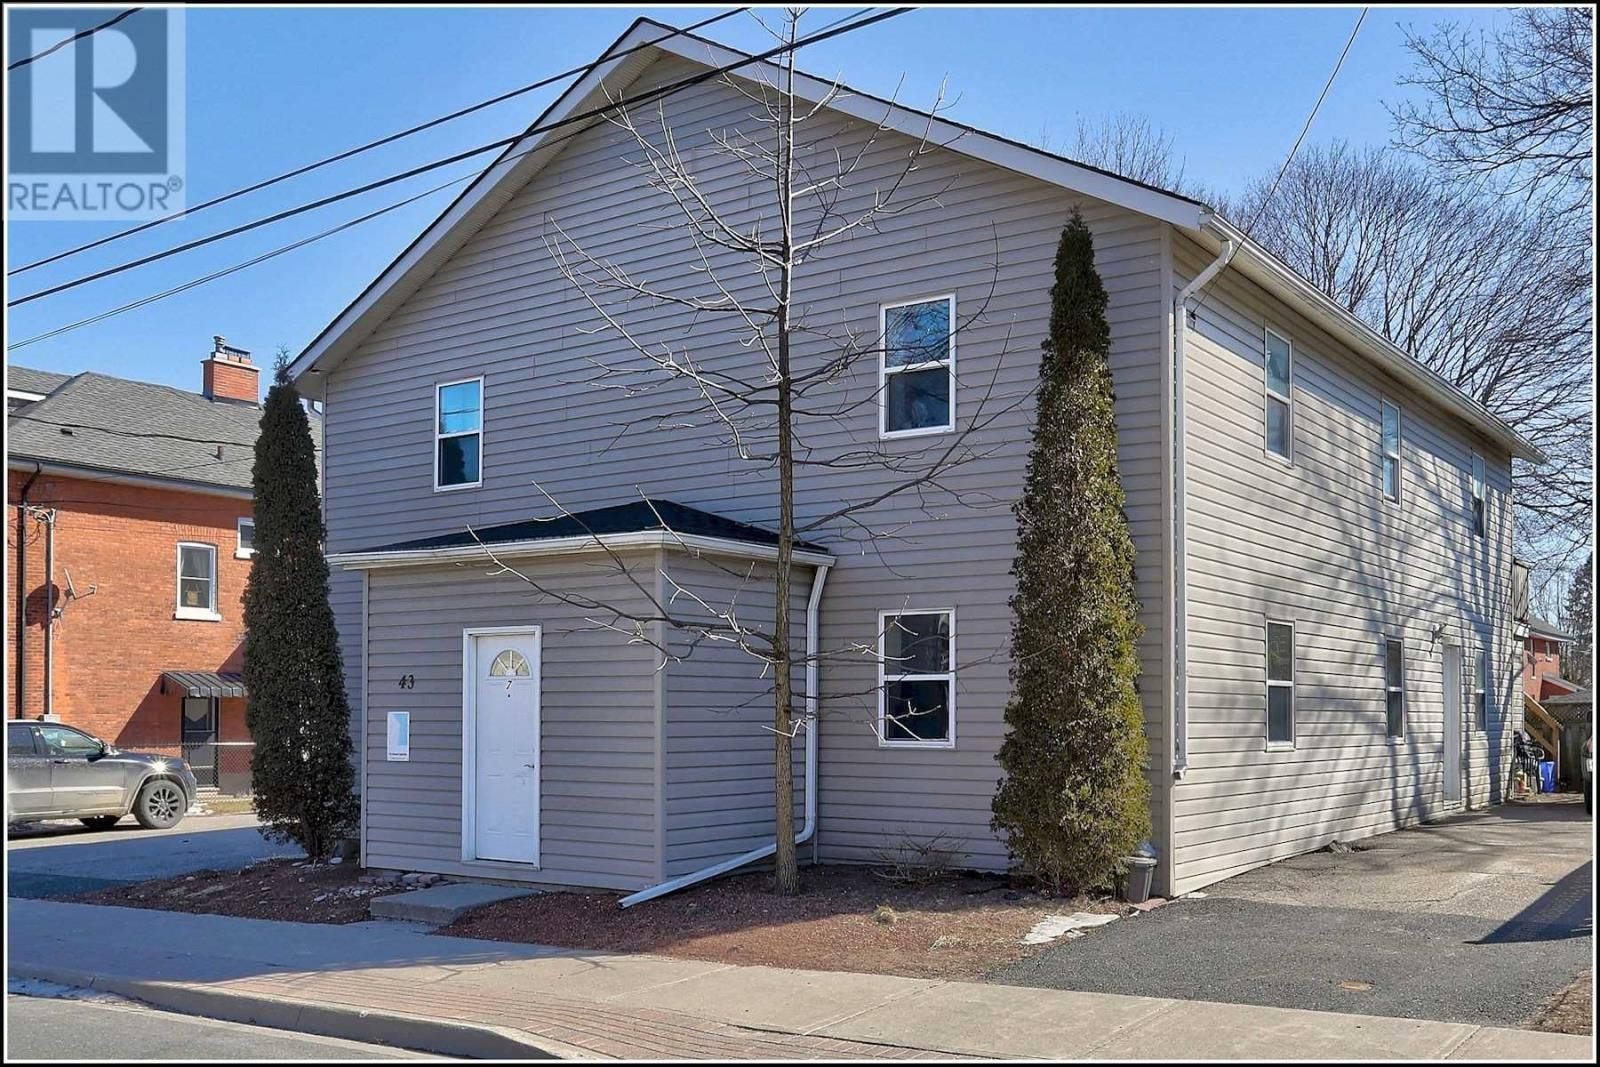 Main Photo: 43 JAMES ST W in Cobourg: Multi-family for sale : MLS®# X5153468